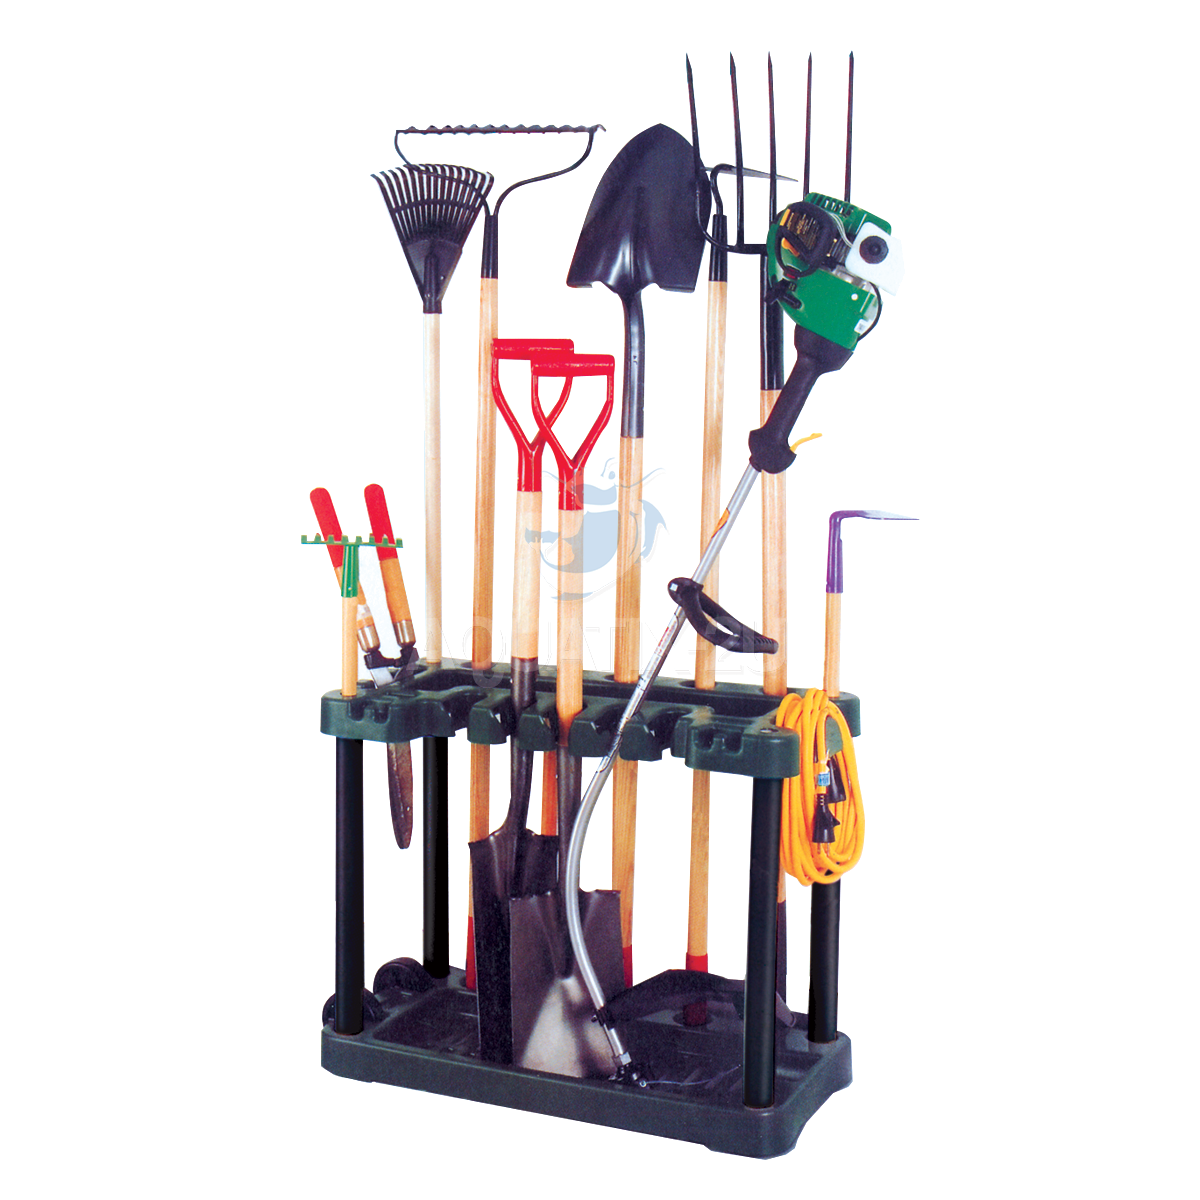 GARDEN TOOL RACK TROLLEY GARDENING EQUIPMENT STORAGE CADDY GARAGE